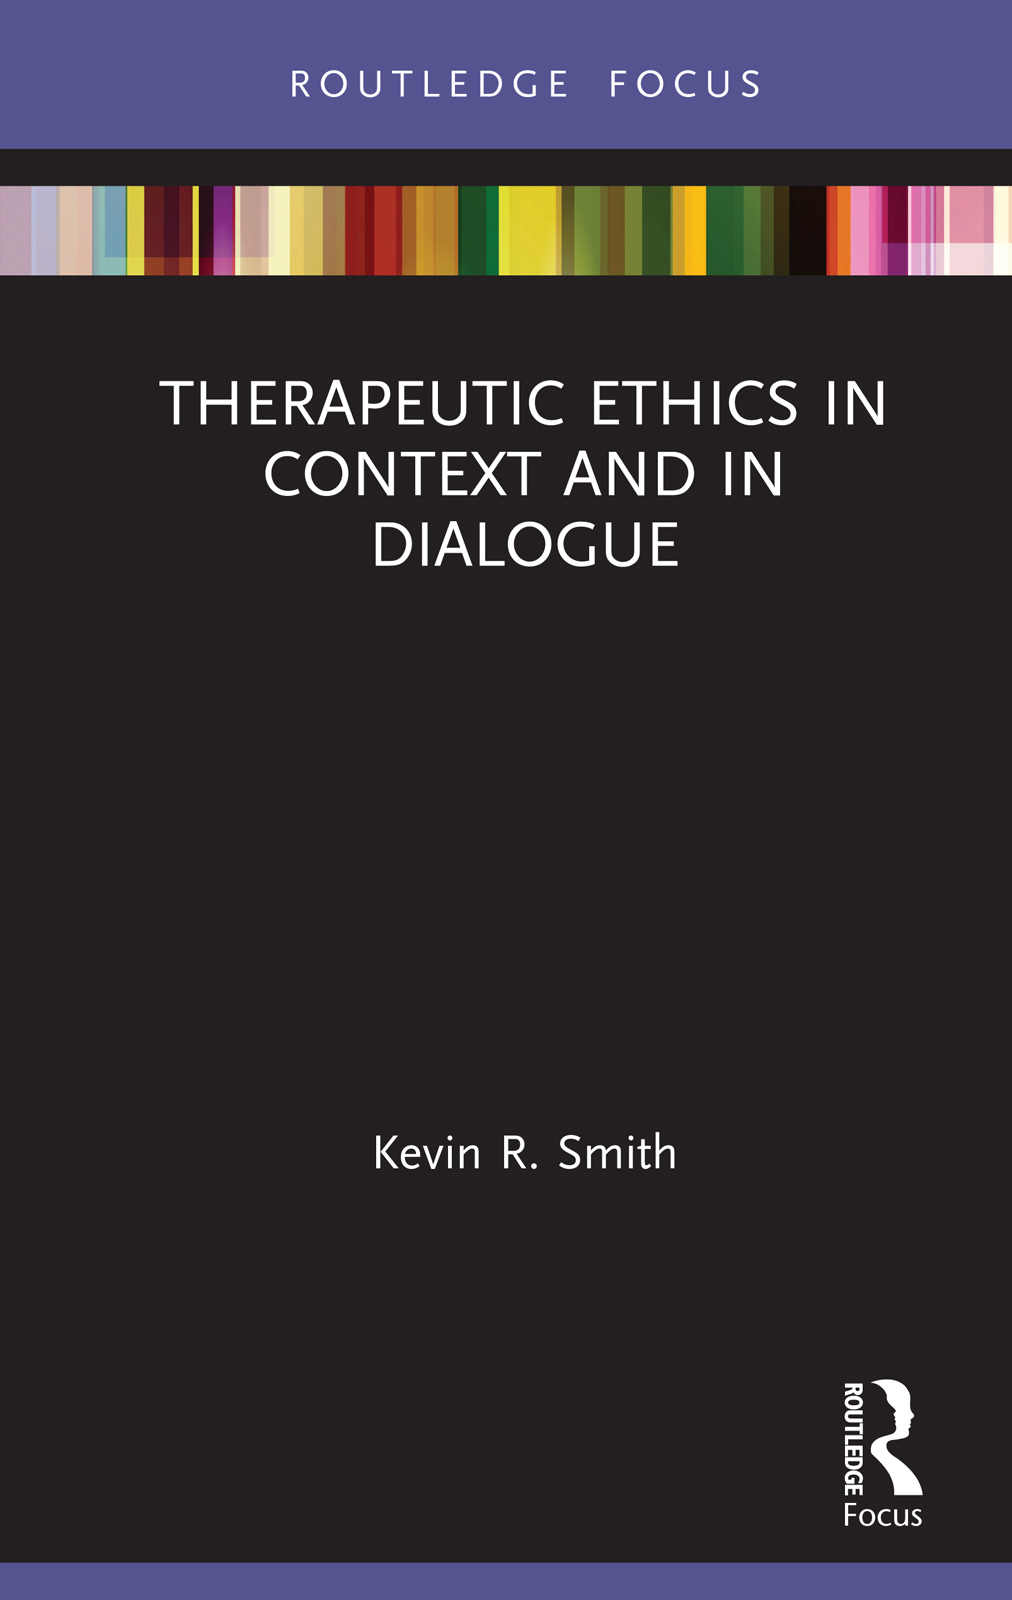 Therapeutic Ethics in Context and in Dialogue